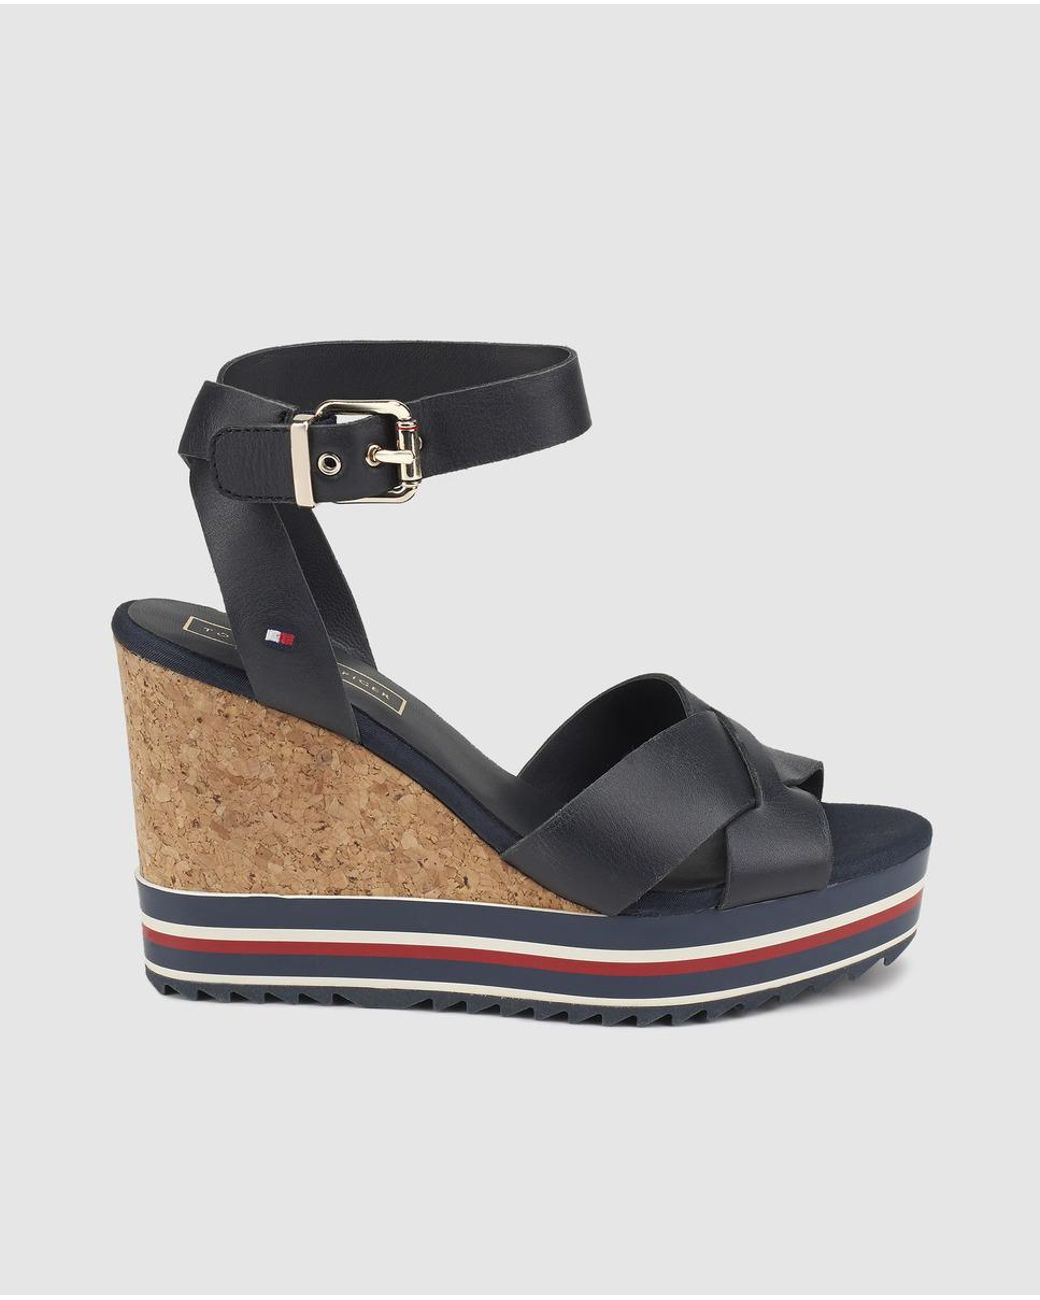 b7131d5c9 Lyst - Tommy Hilfiger Navy Blue Wedge Espadrilles With Stripe Detail ...